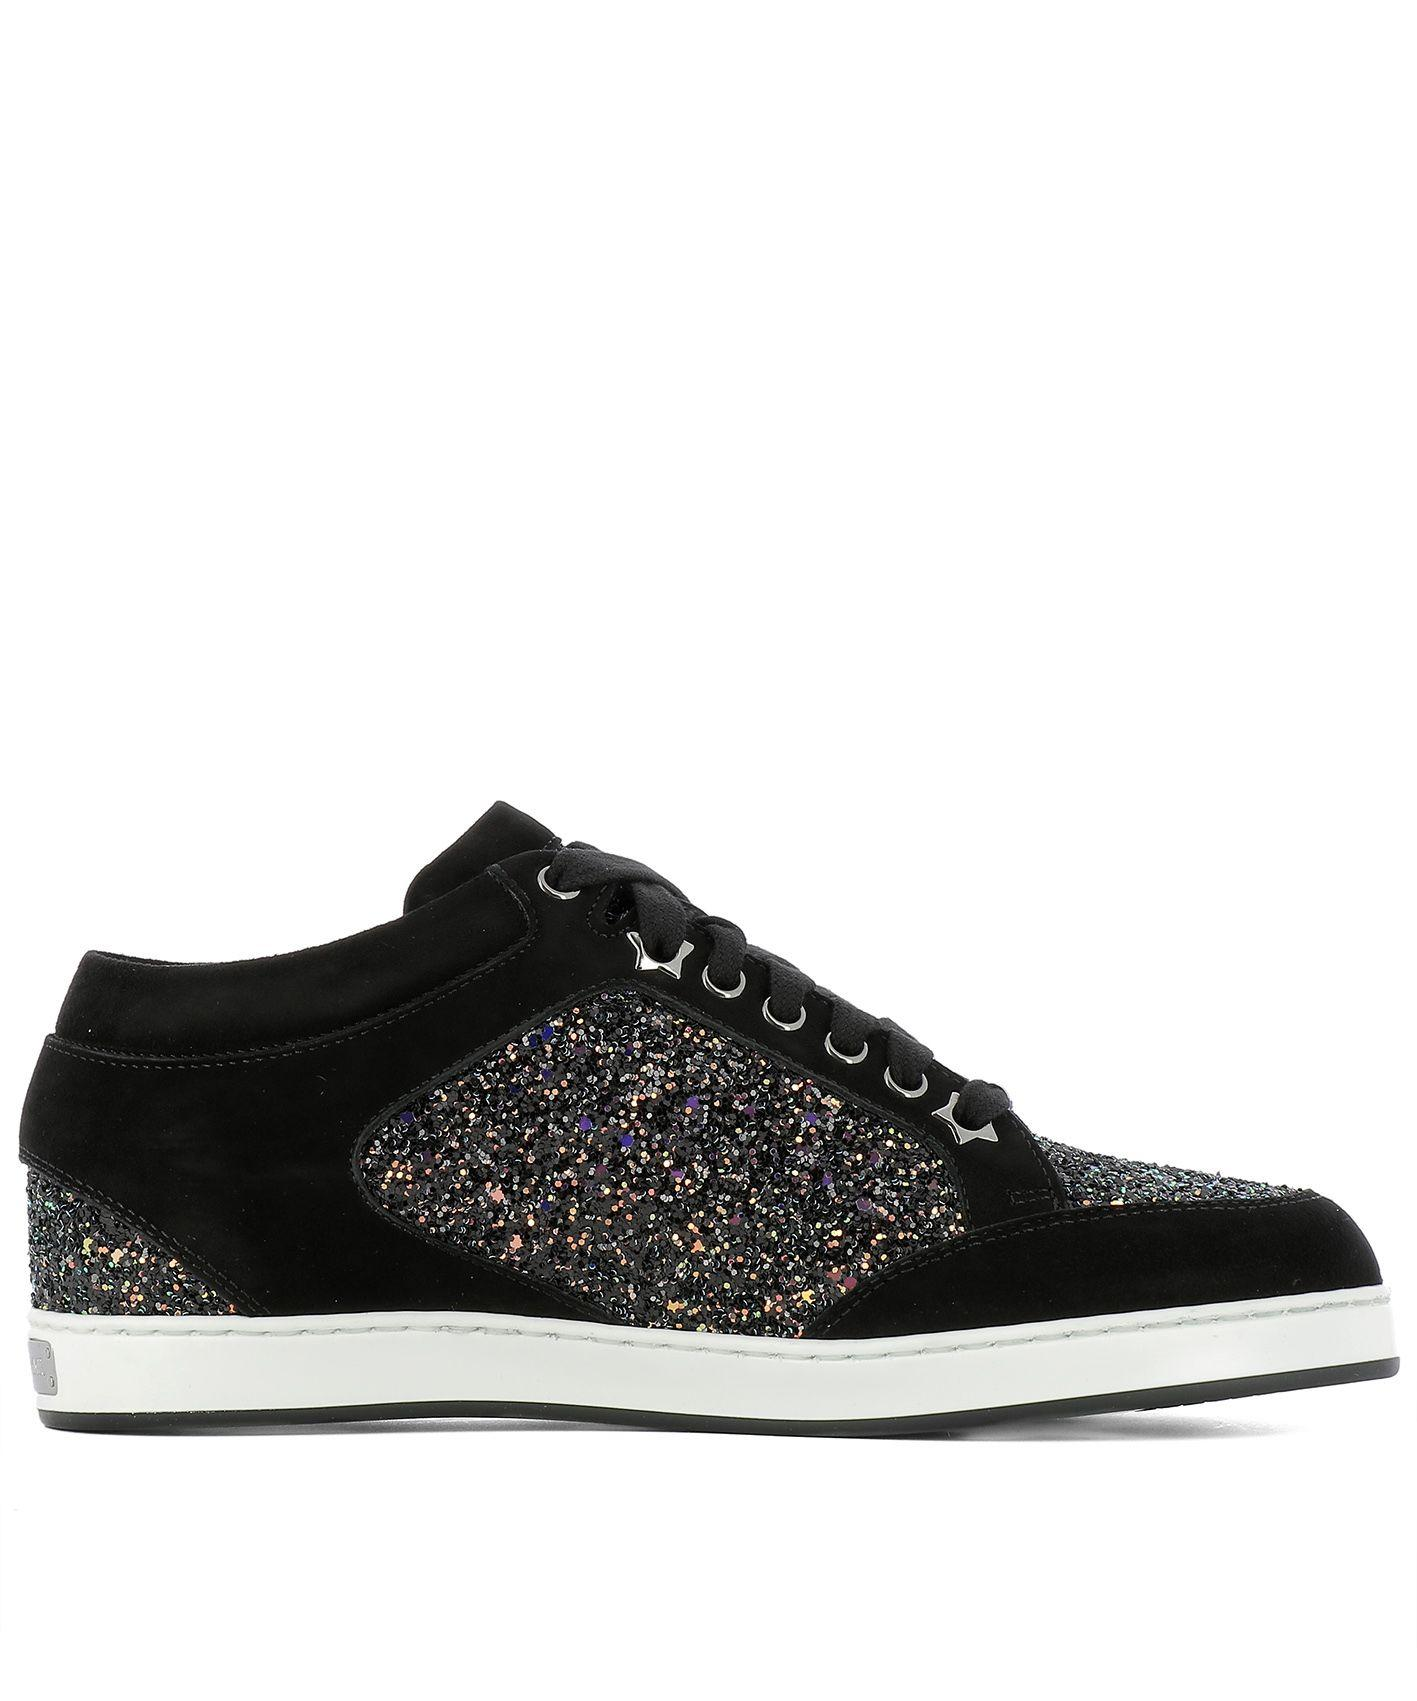 a3c5c5743a5f43 Jimmy Choo Miami Rainbow Coarse Glitter And Black Suede Sneakers In Rainbow  Black